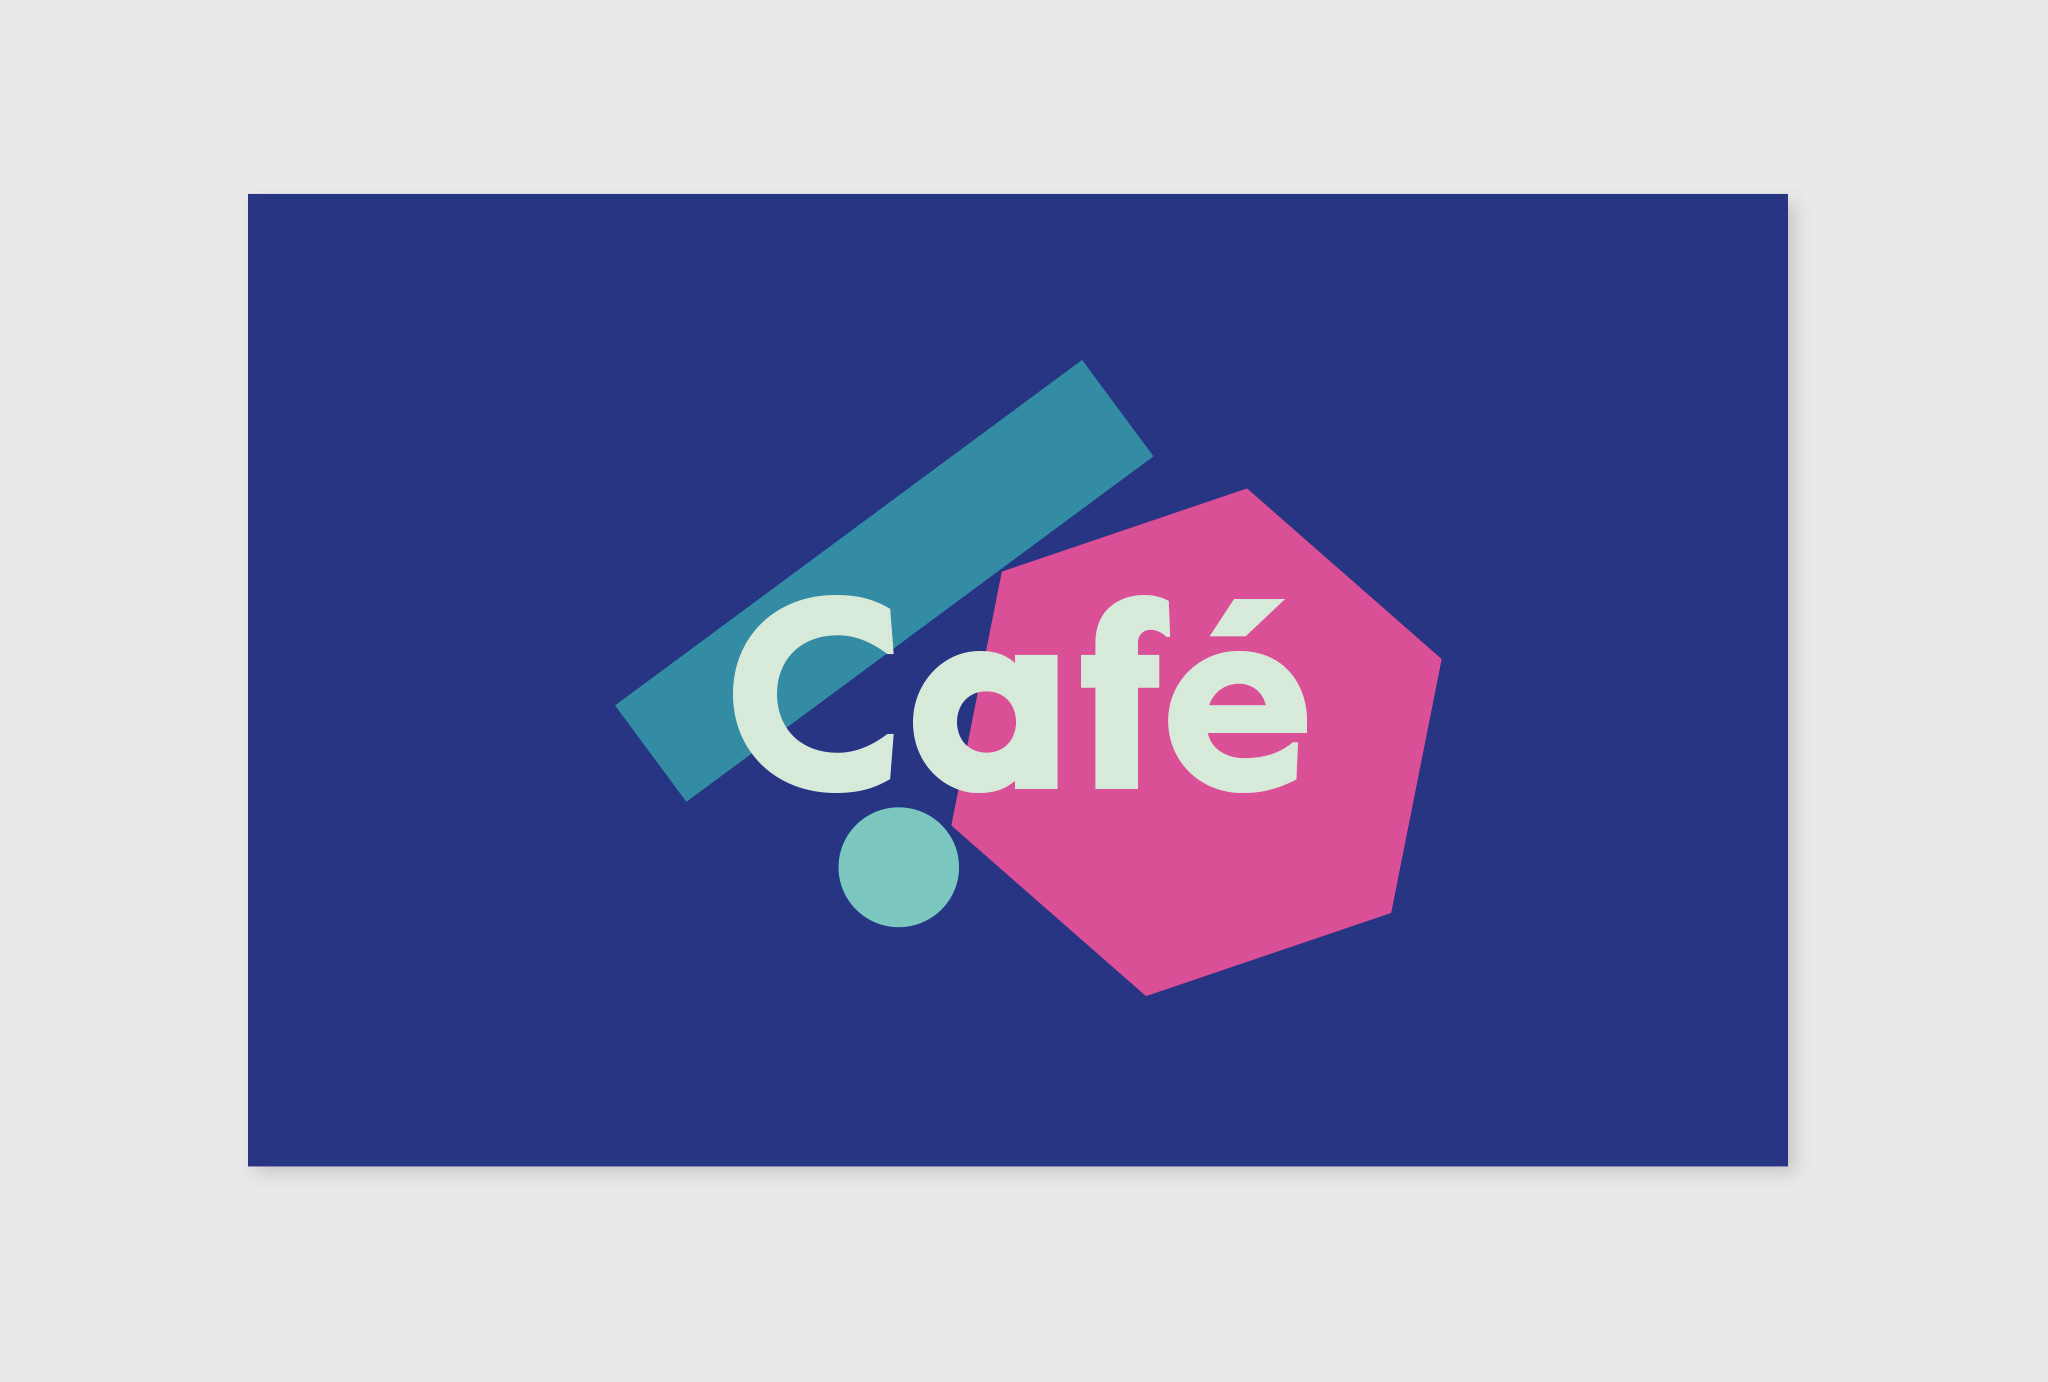 'Cafe' written in light green, in the background a blue circle, turquoise rectangle and a dark pink hexagon on a dark blue background